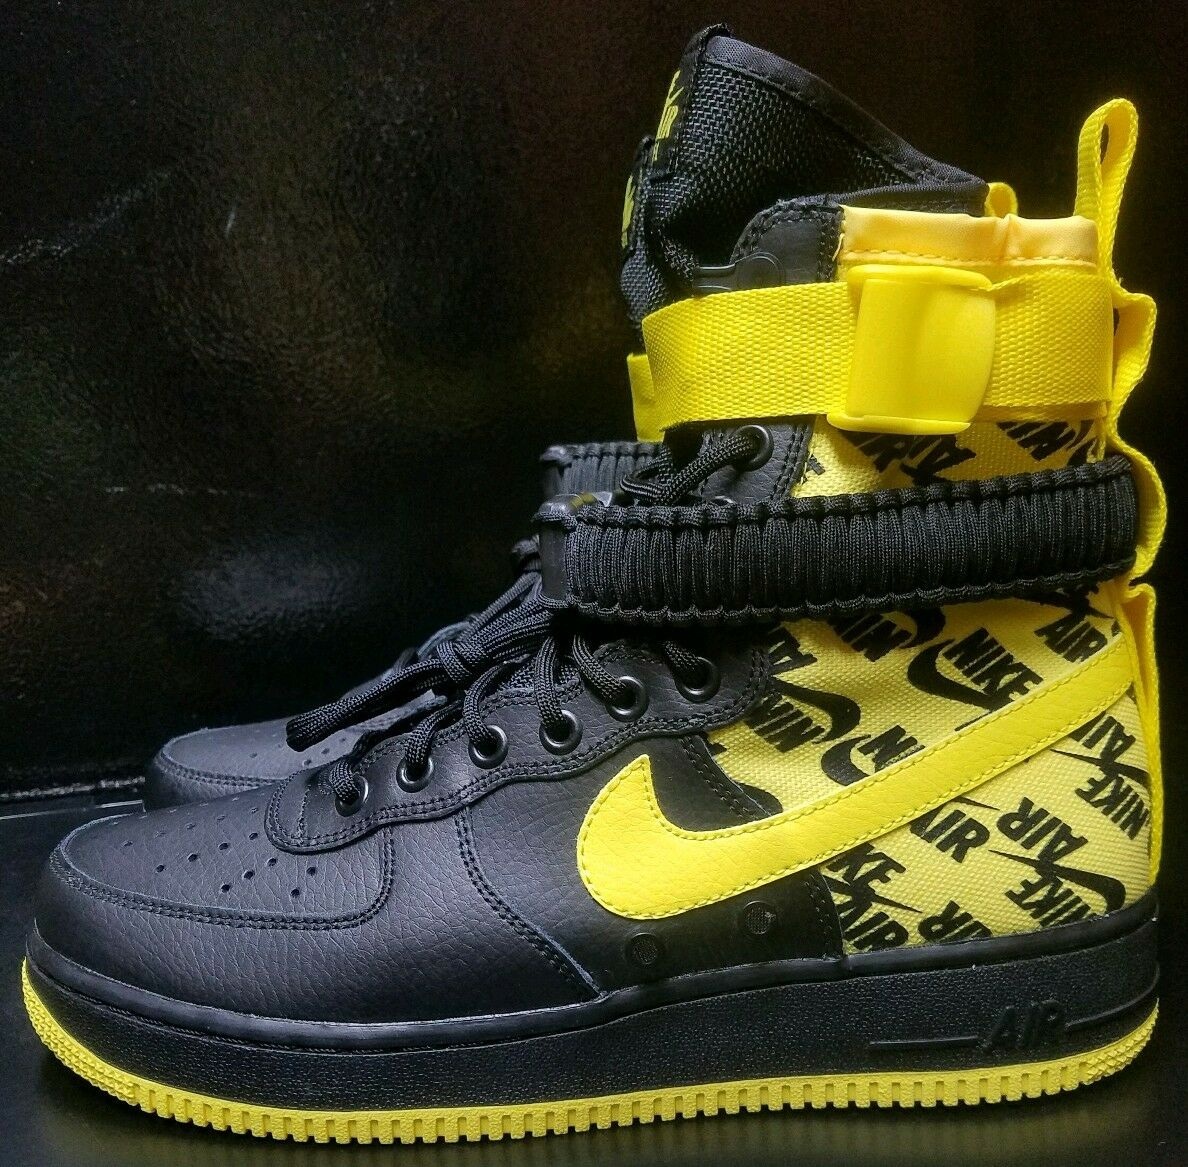 Nike Men's SF AIR FORCE 1 Black Dynamic Yellow New shoes Size 9  AR1955-001